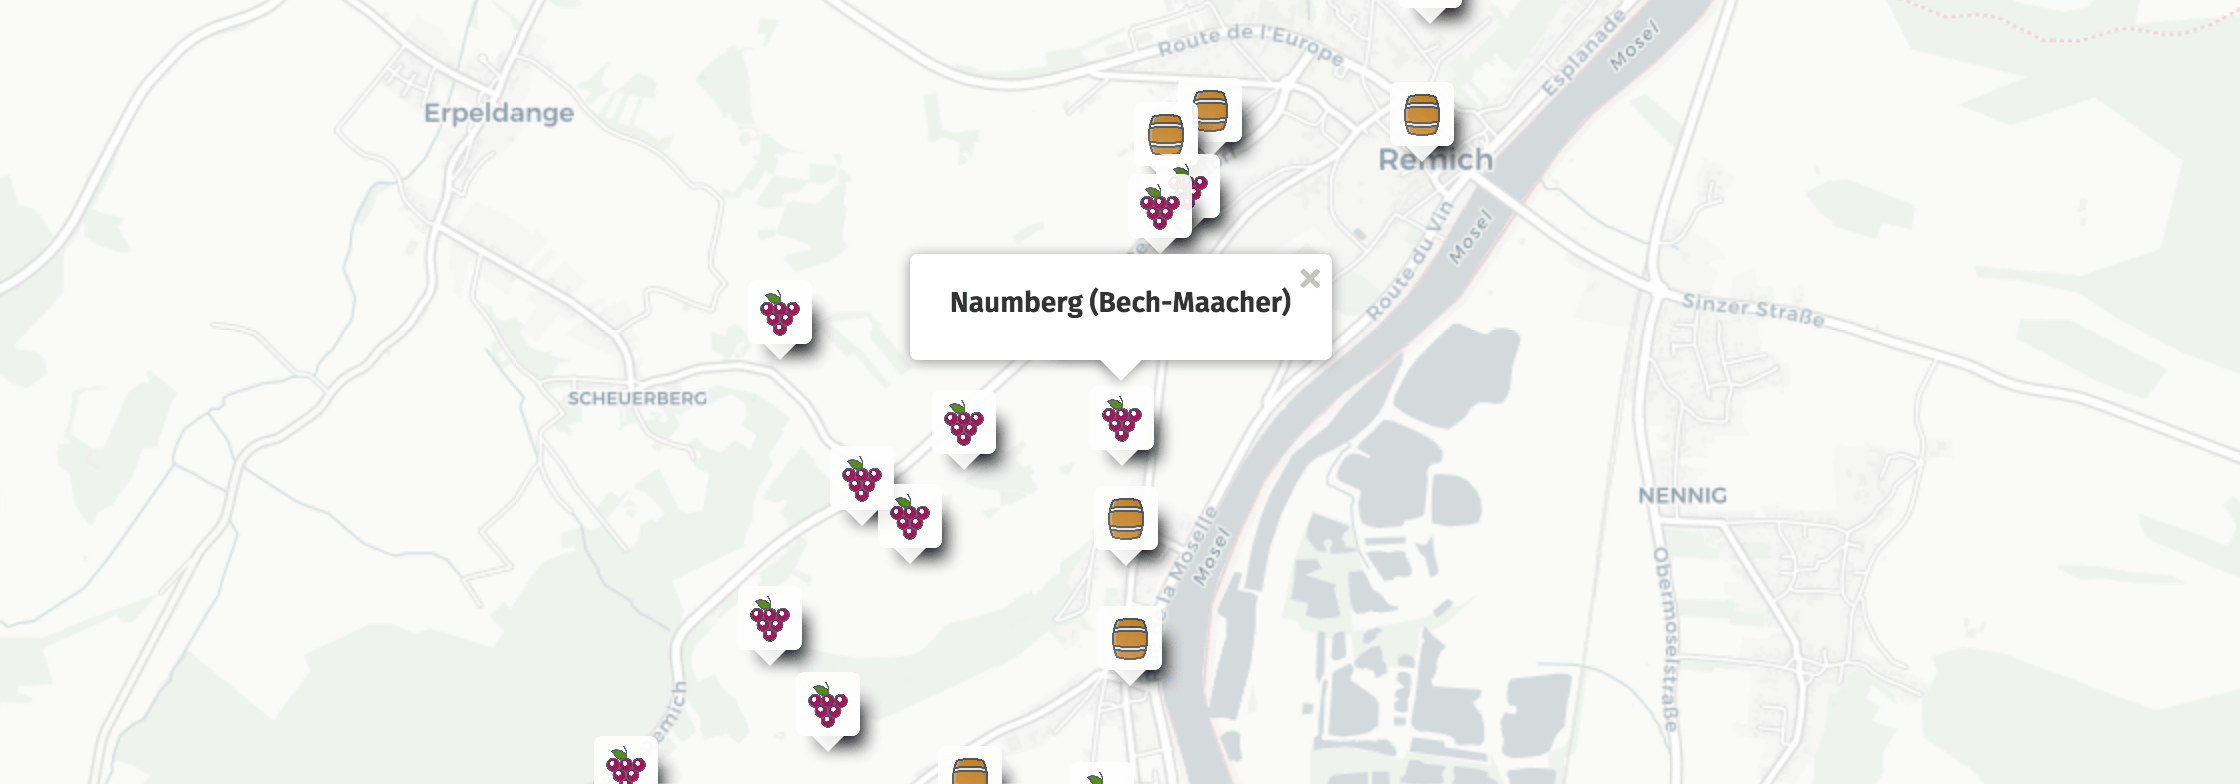 Geolocation of Naumberg wines in Bech-Kleinmacher